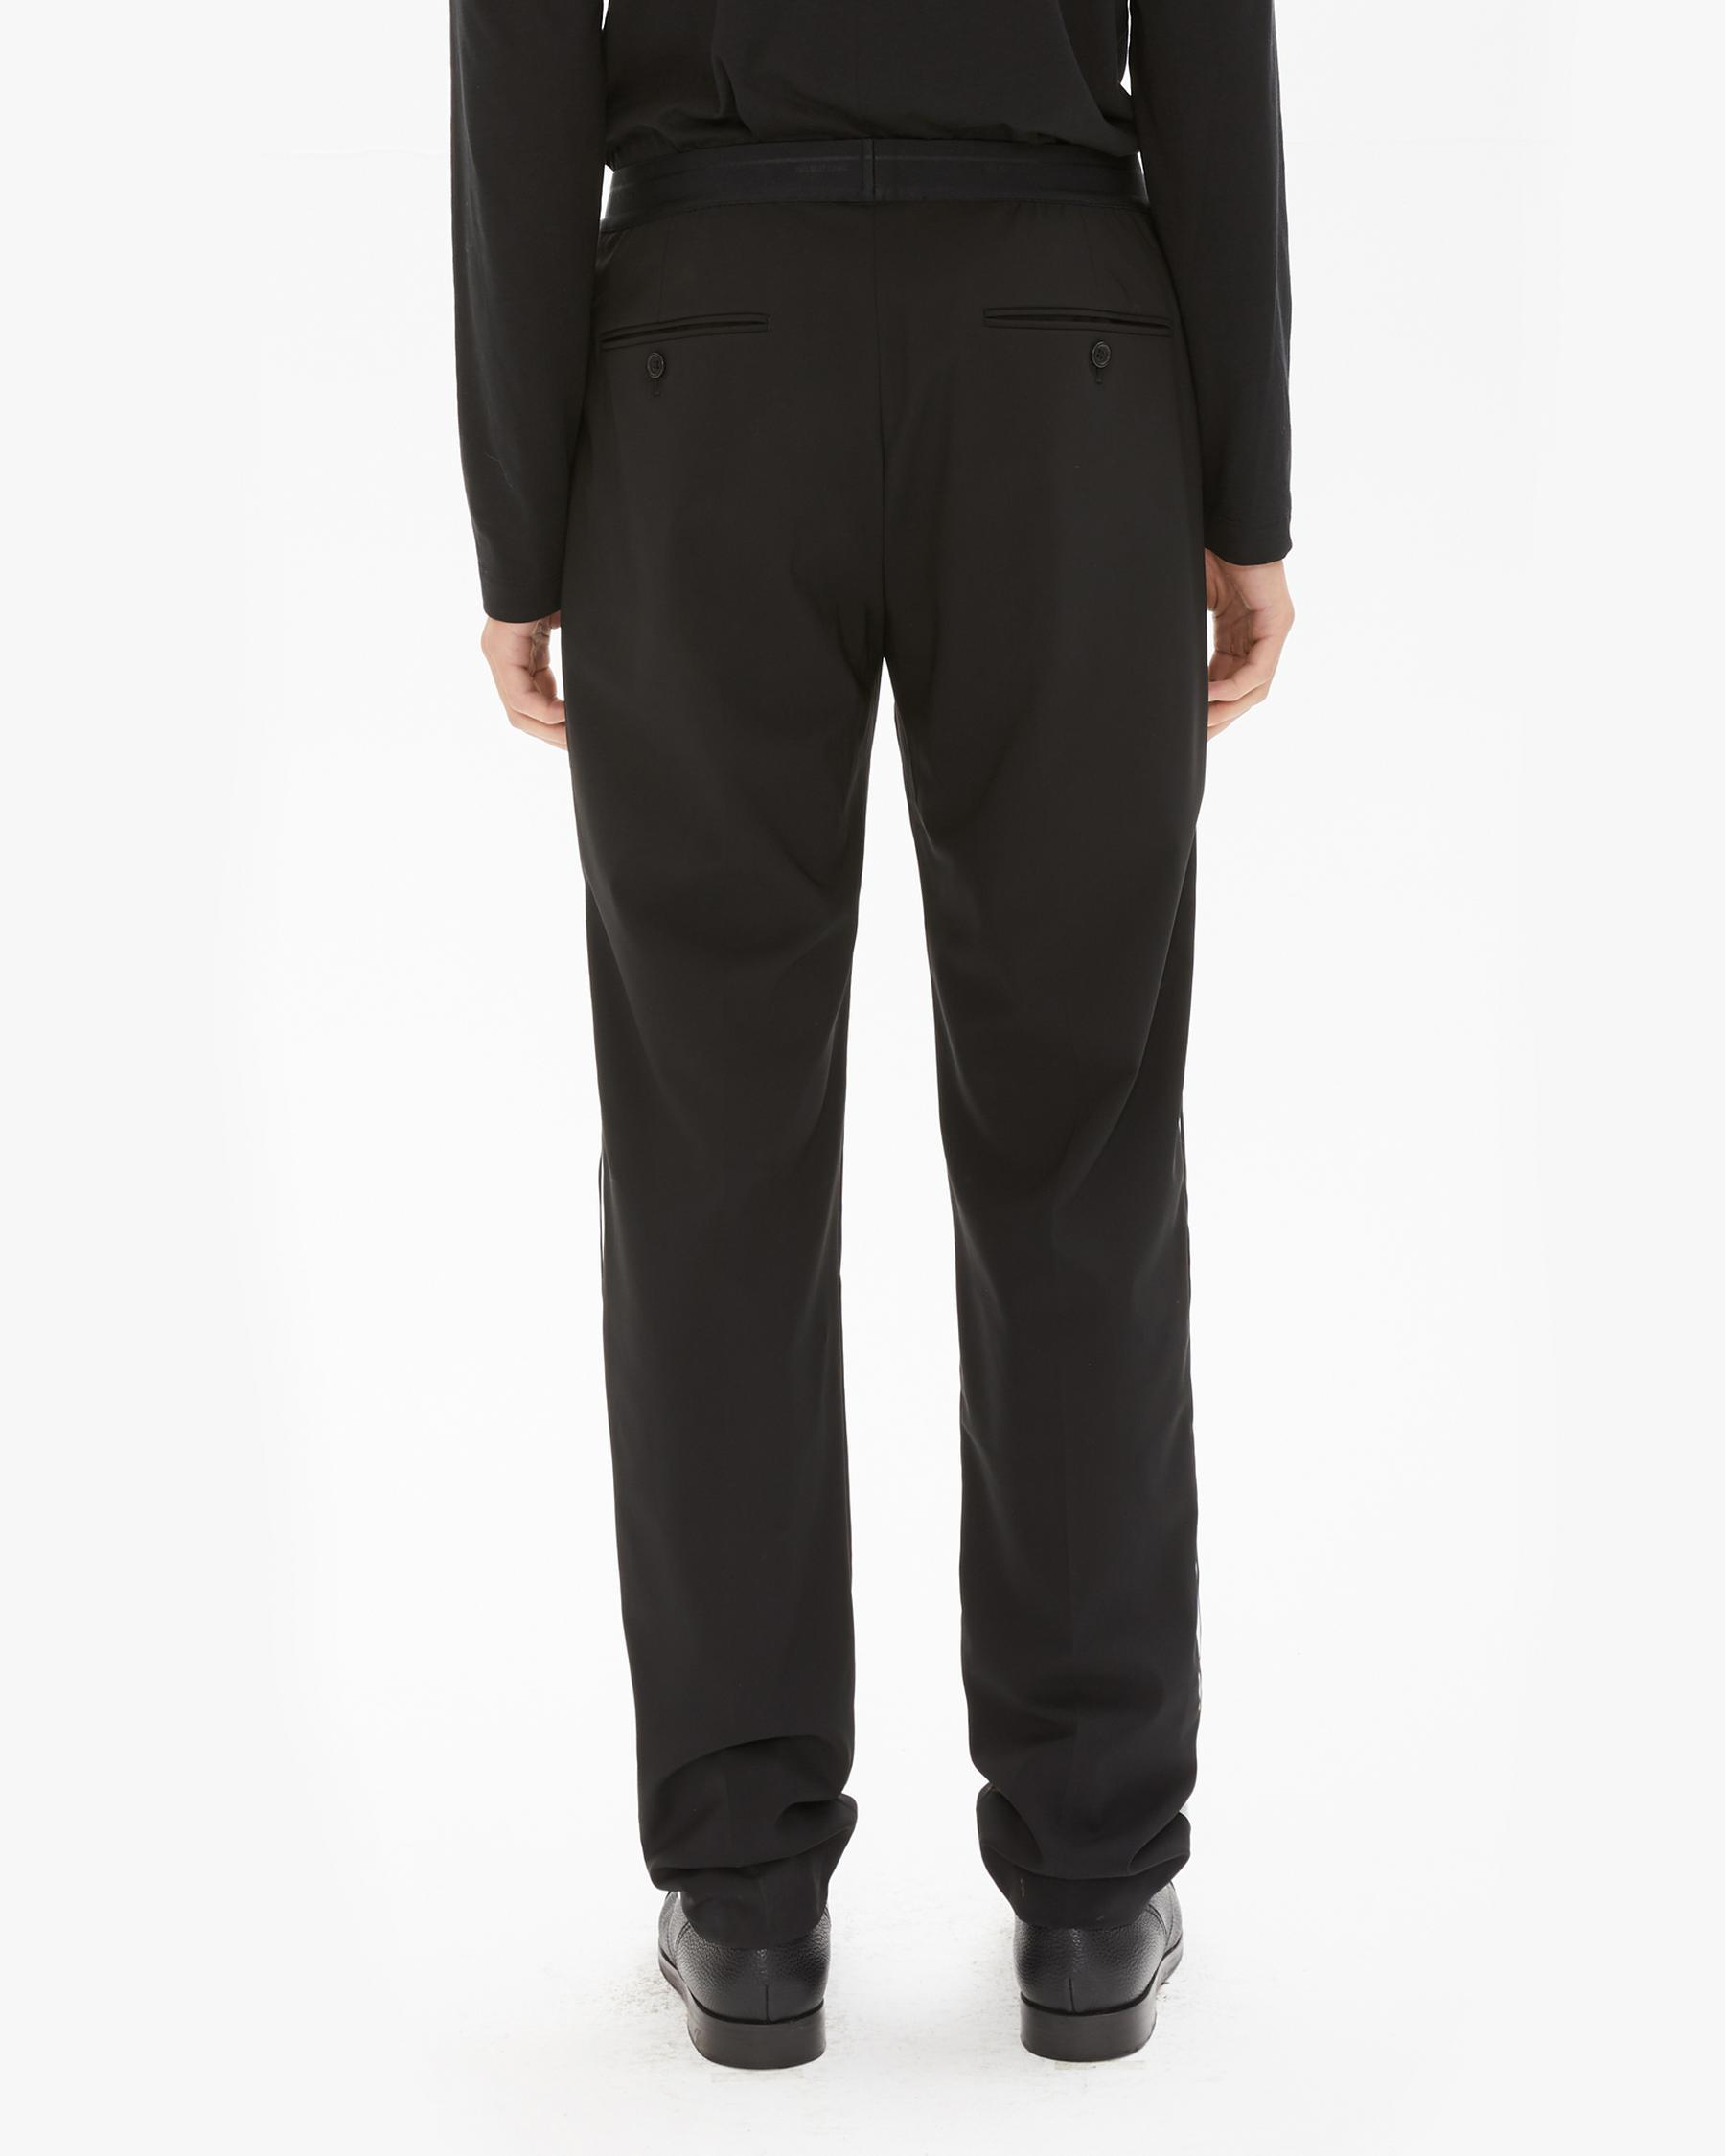 BAND PULL ON PANT 2